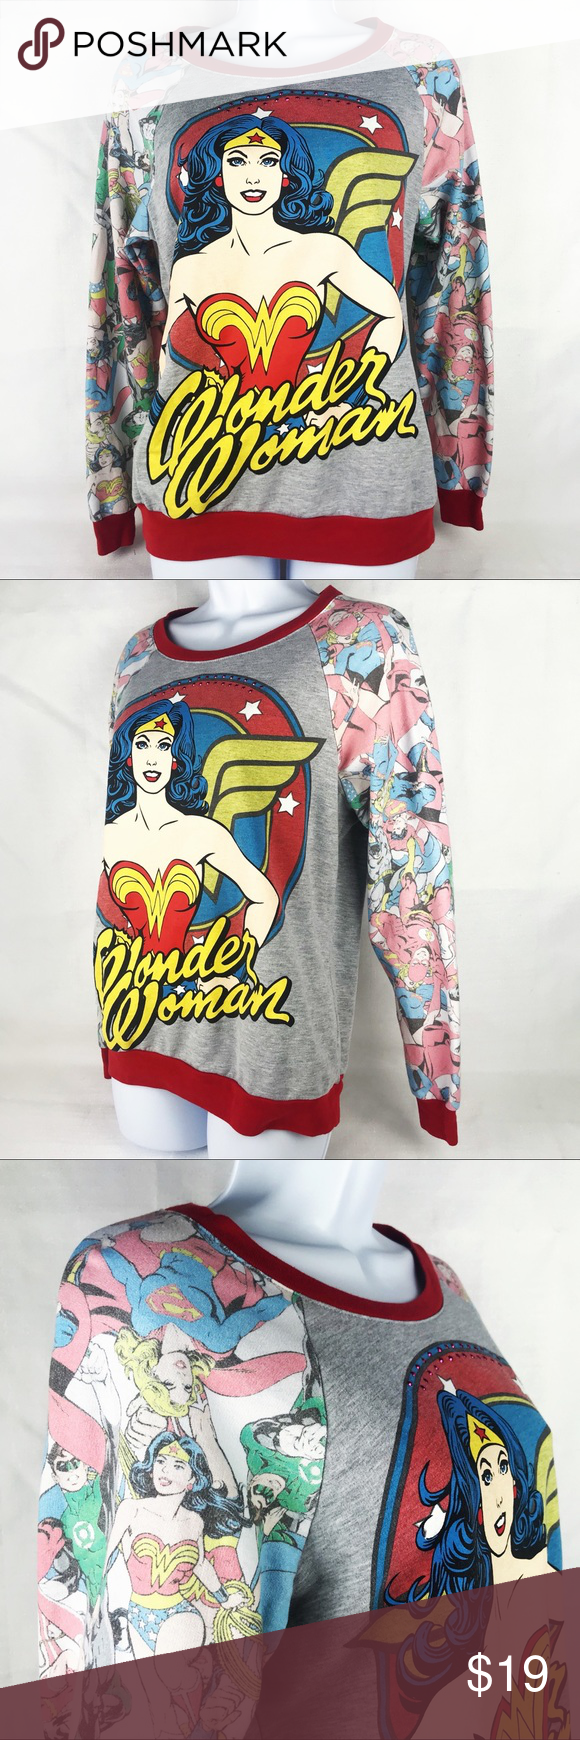 72794b76e6e DC Comics Wonder Woman   Peeps Raglan Sweatshirt DC Comics Wonder Woman    Peeps Raglan Sweatshirt